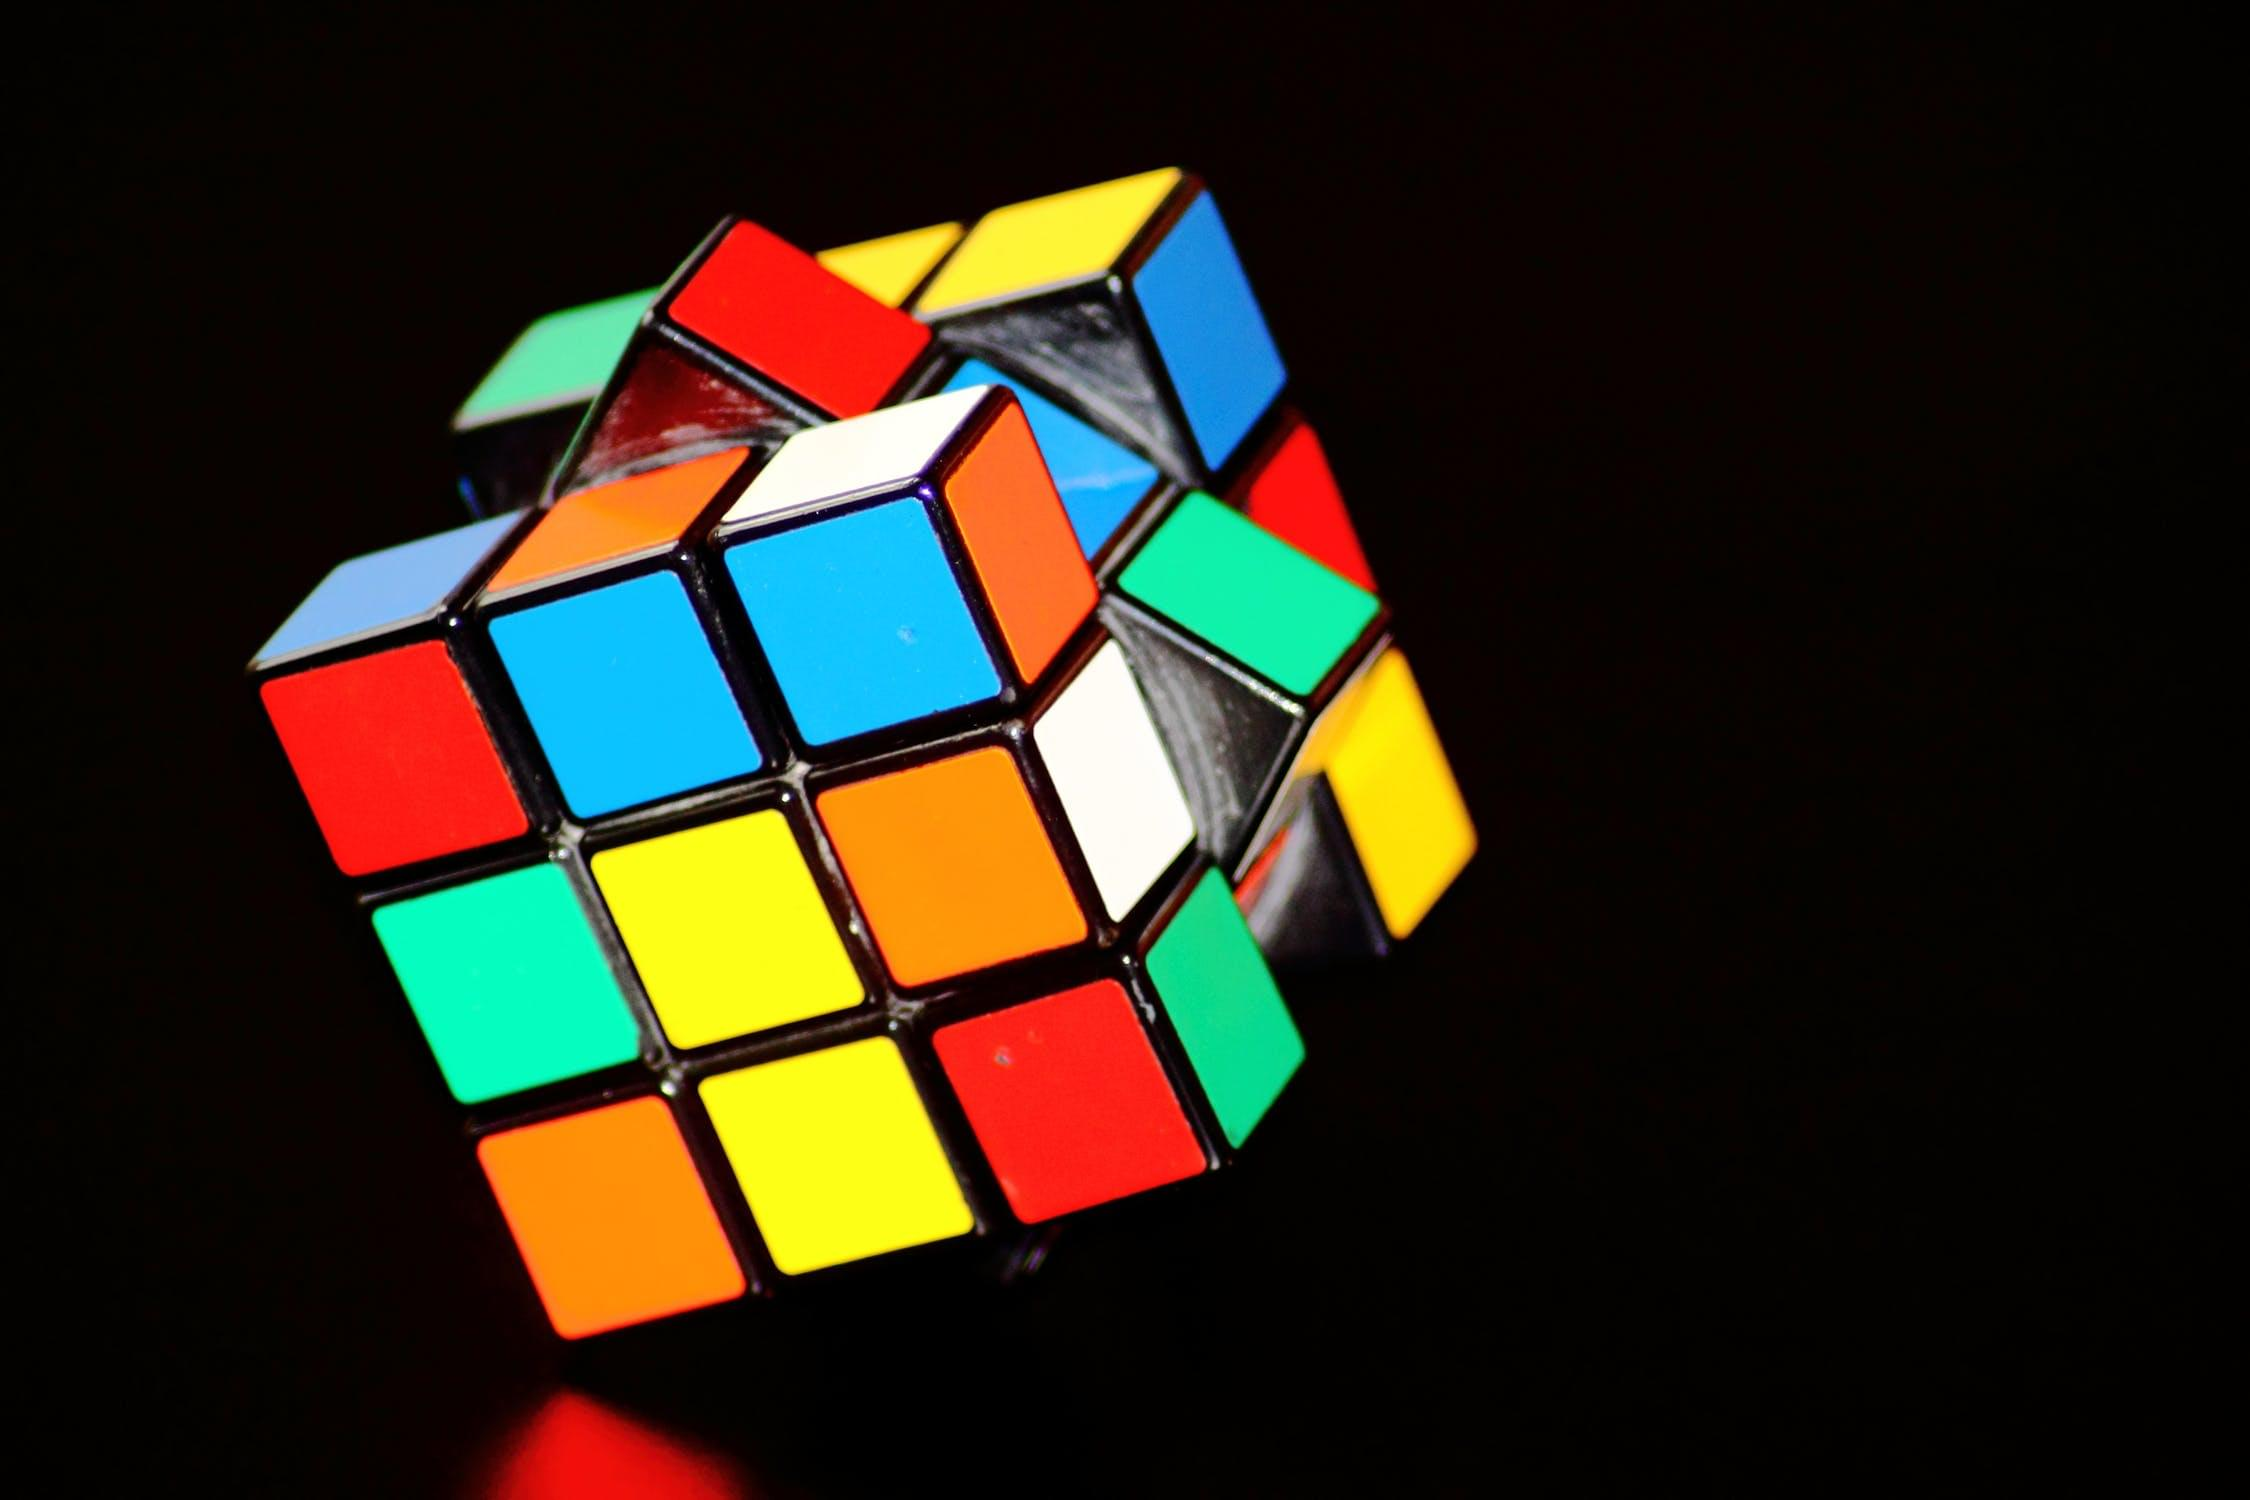 A new smart Rubik's Cube tells you how to solve it